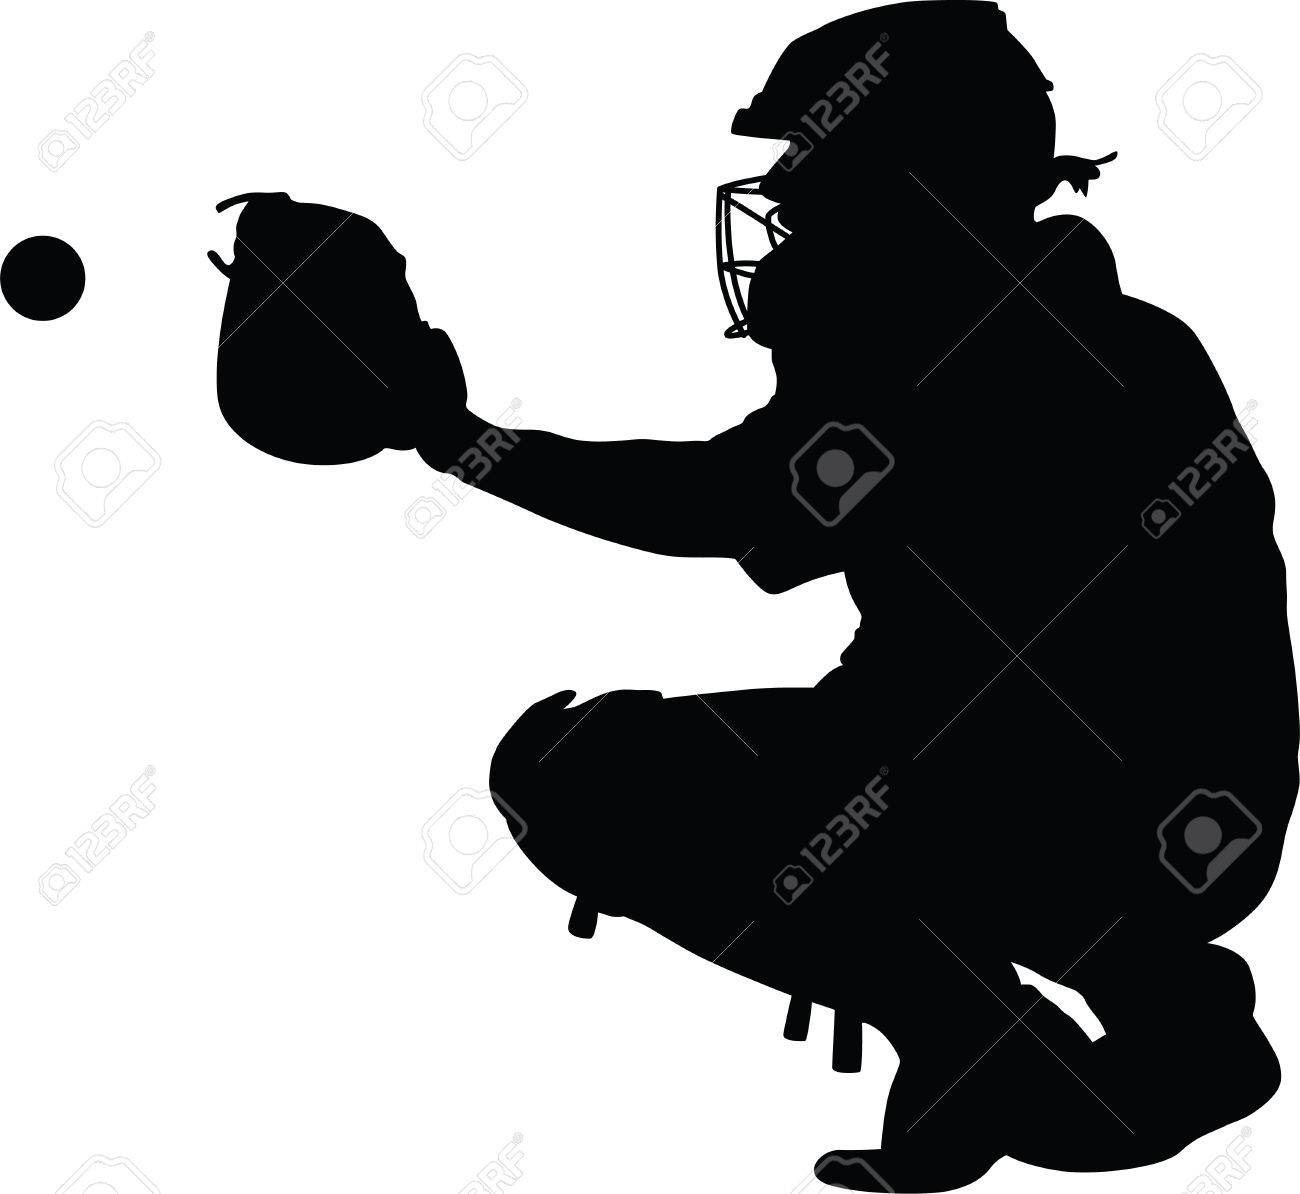 Cather clipart picture freeuse library Baseball catcher clipart 4 » Clipart Station picture freeuse library